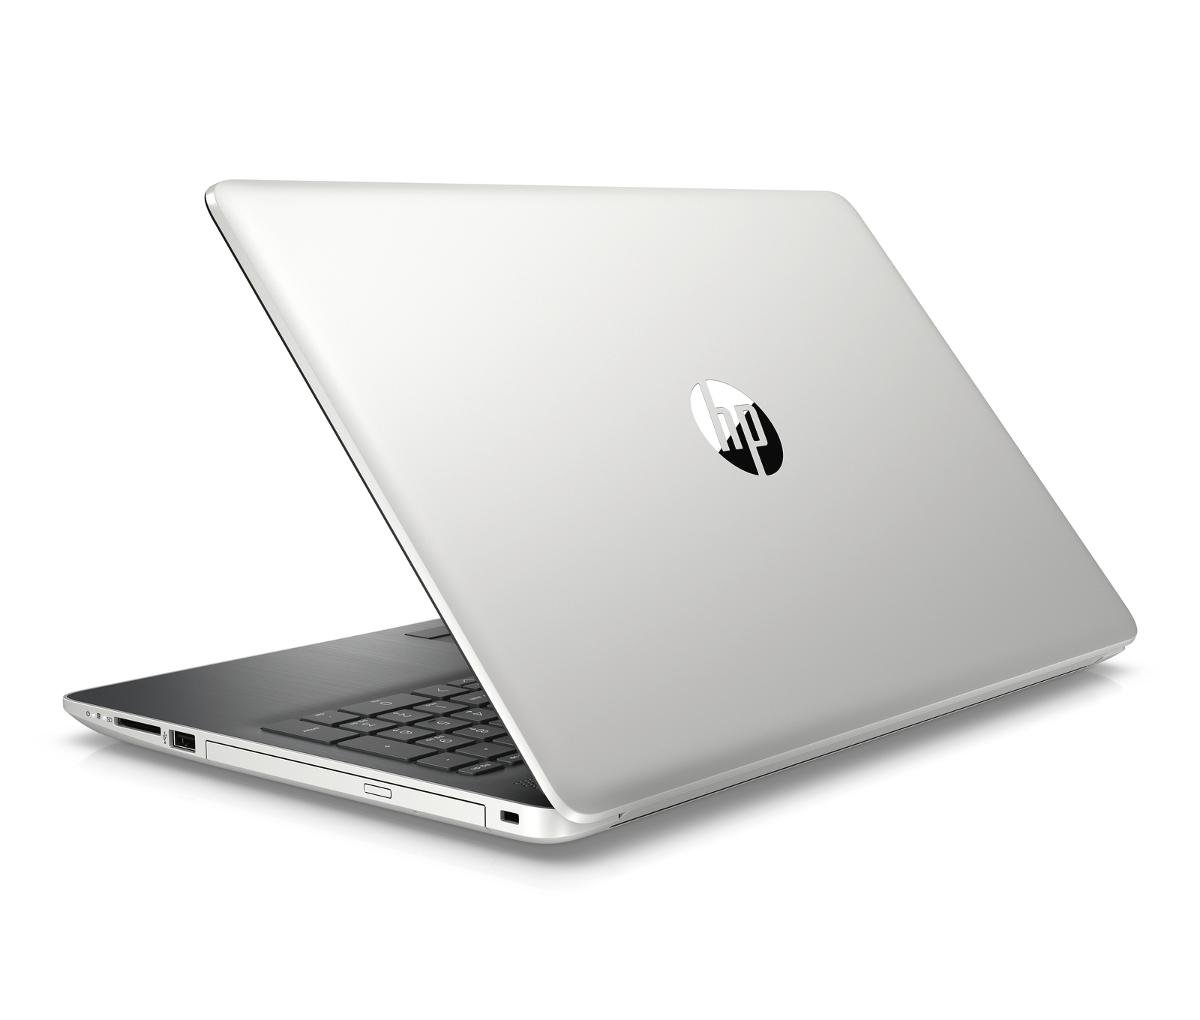 "Laptop HP 15-db0006nw 4TW77EA, Ryzen 3 2200, 8 GB RAM, 15.6"", 1 TB, Windows 10 Home"